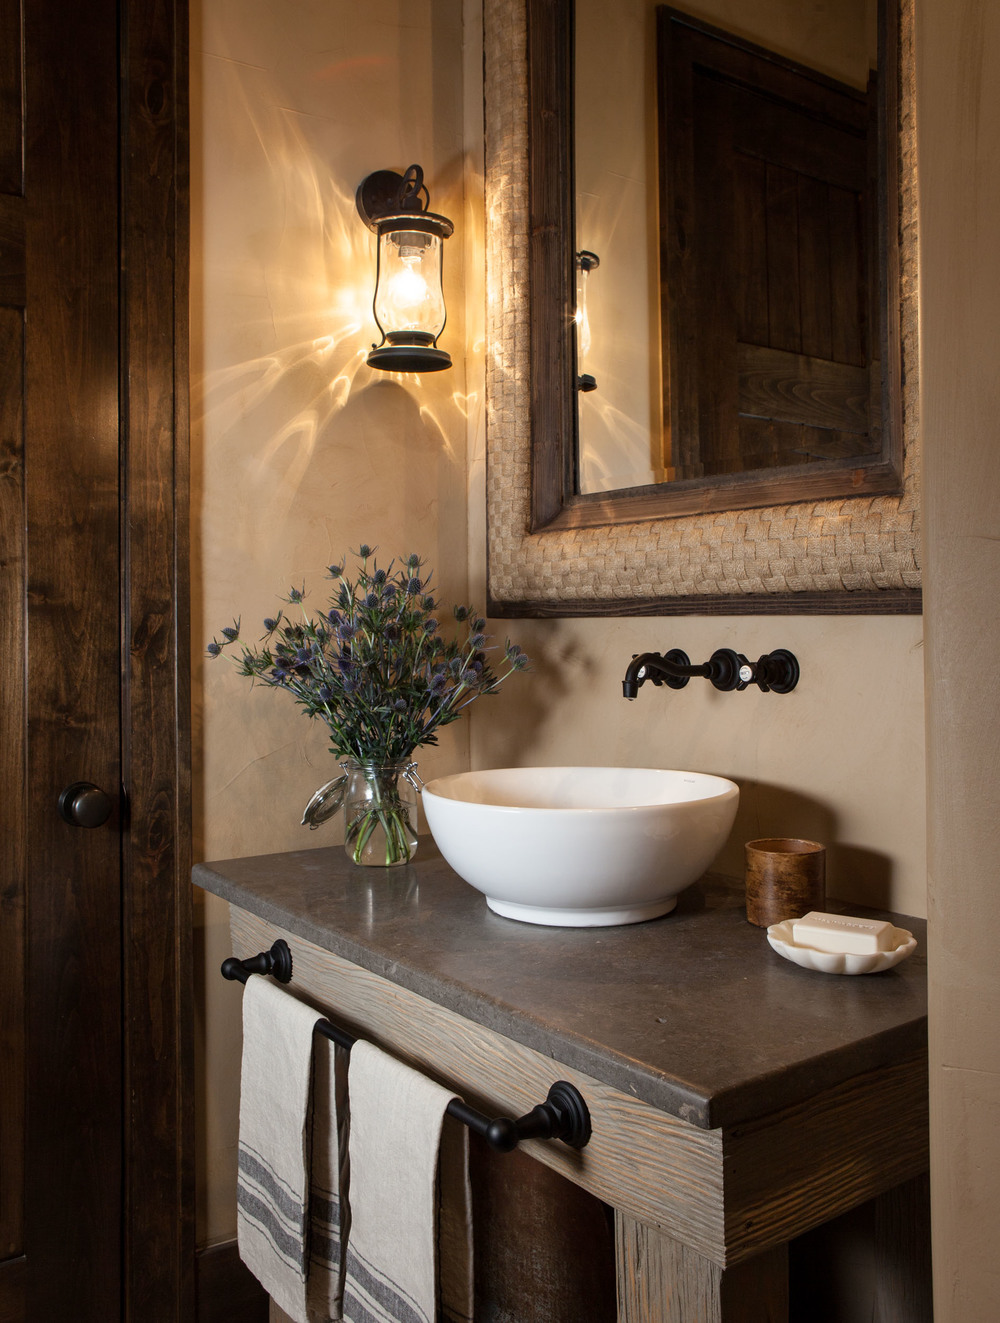 austin-house-bathroom-sink-interior-design.jpg